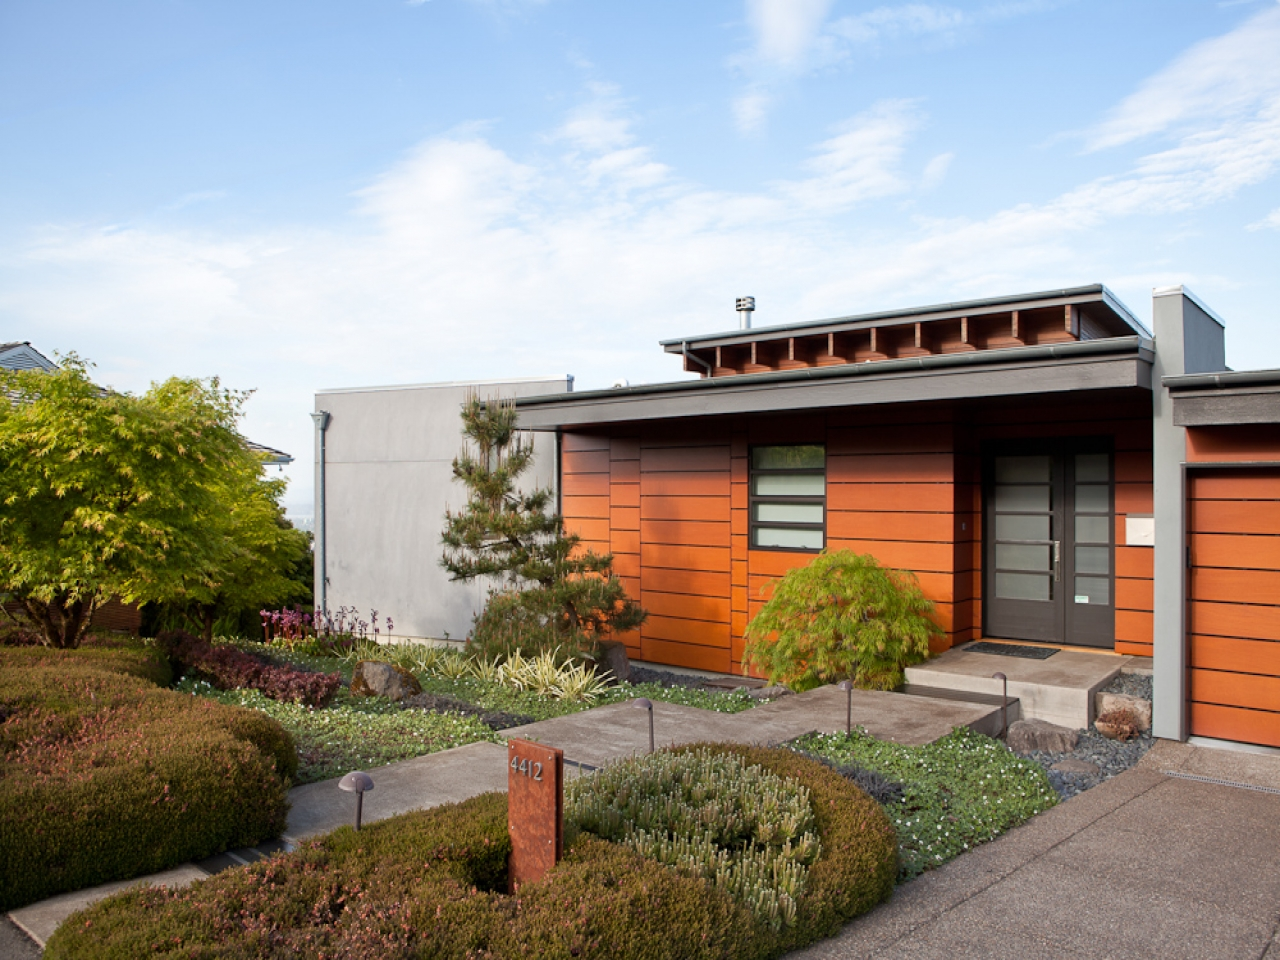 Pacific northwest indian houses pacific northwest for Pnw home builders